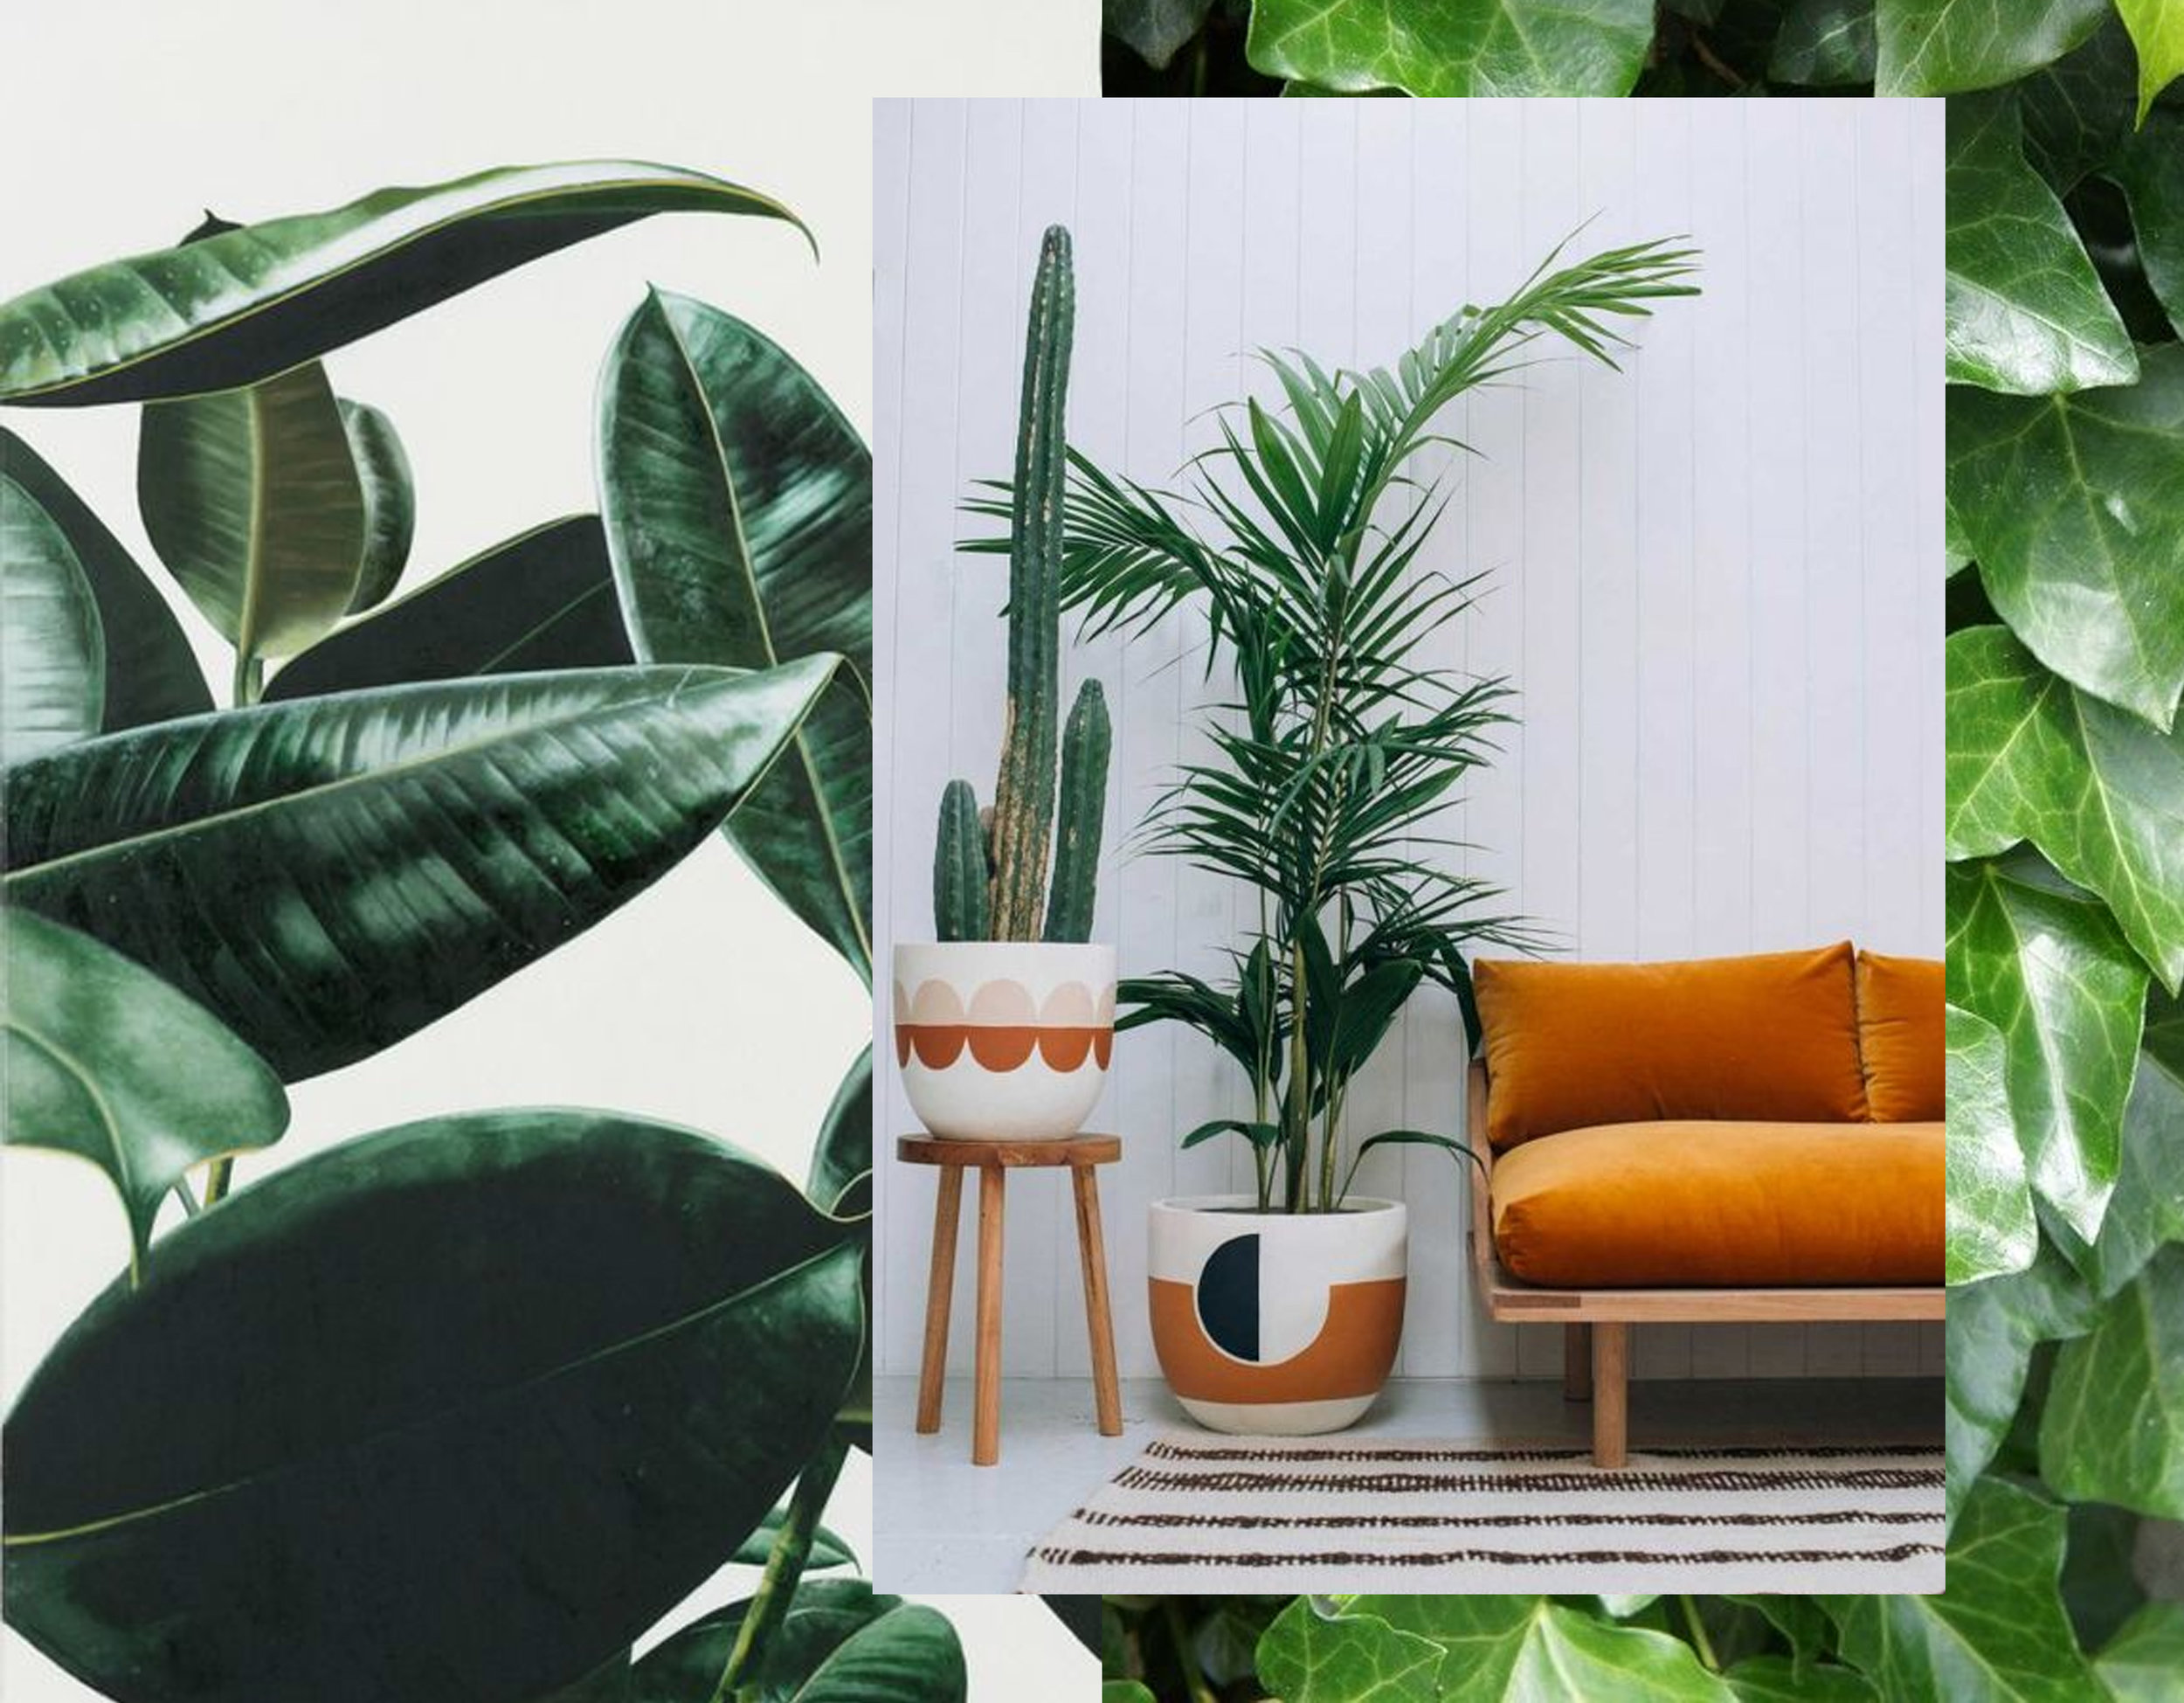 Rubber plant - cactus - Areca Palm - English Ivy